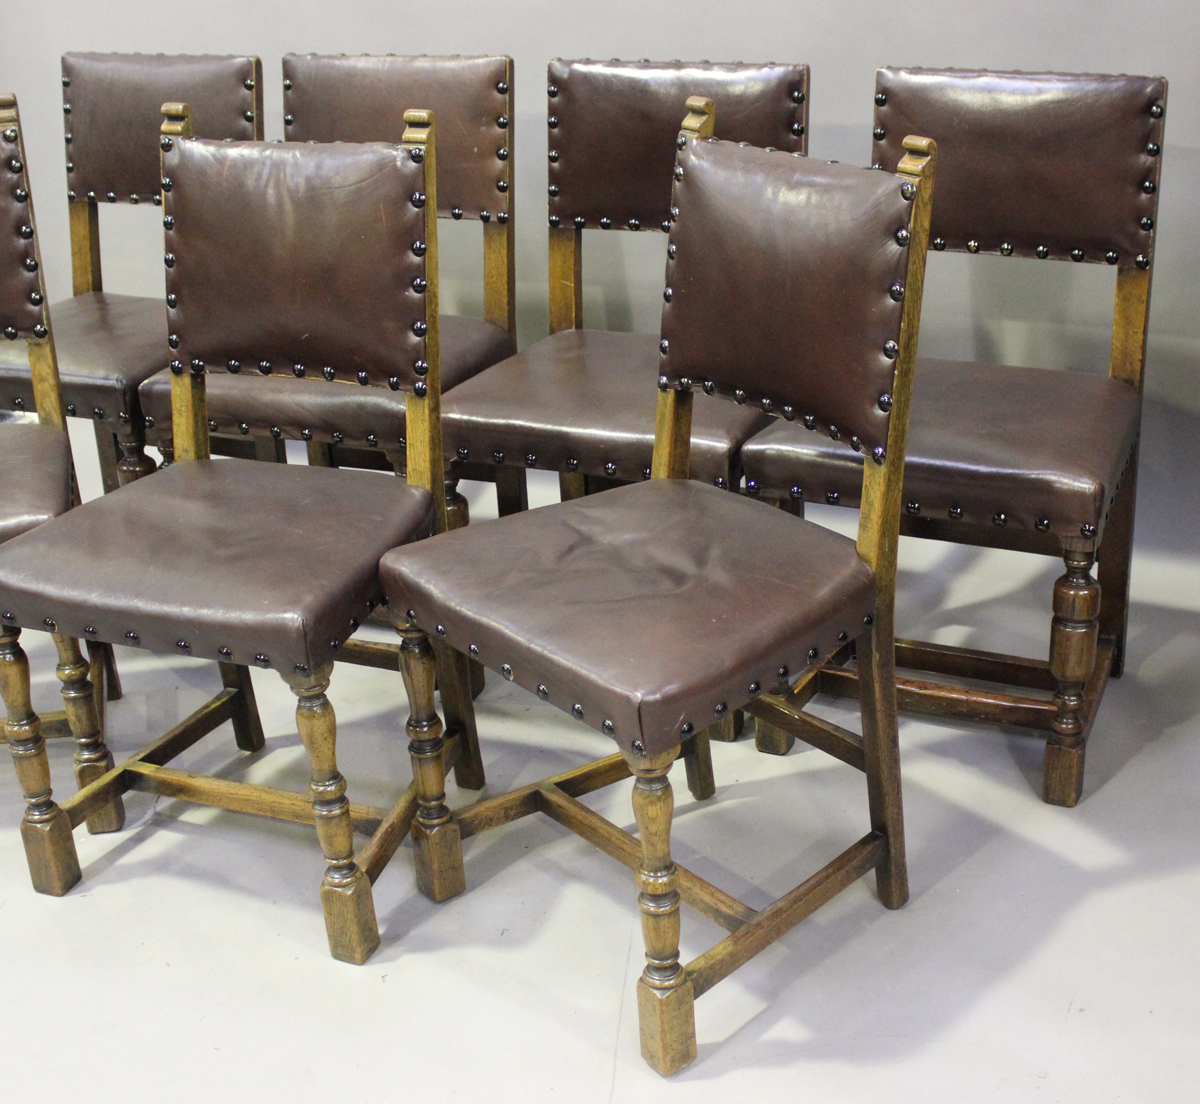 An early/mid-20th century harlequin set of seven oak framed dining chairs, comprising a set of - Image 4 of 4